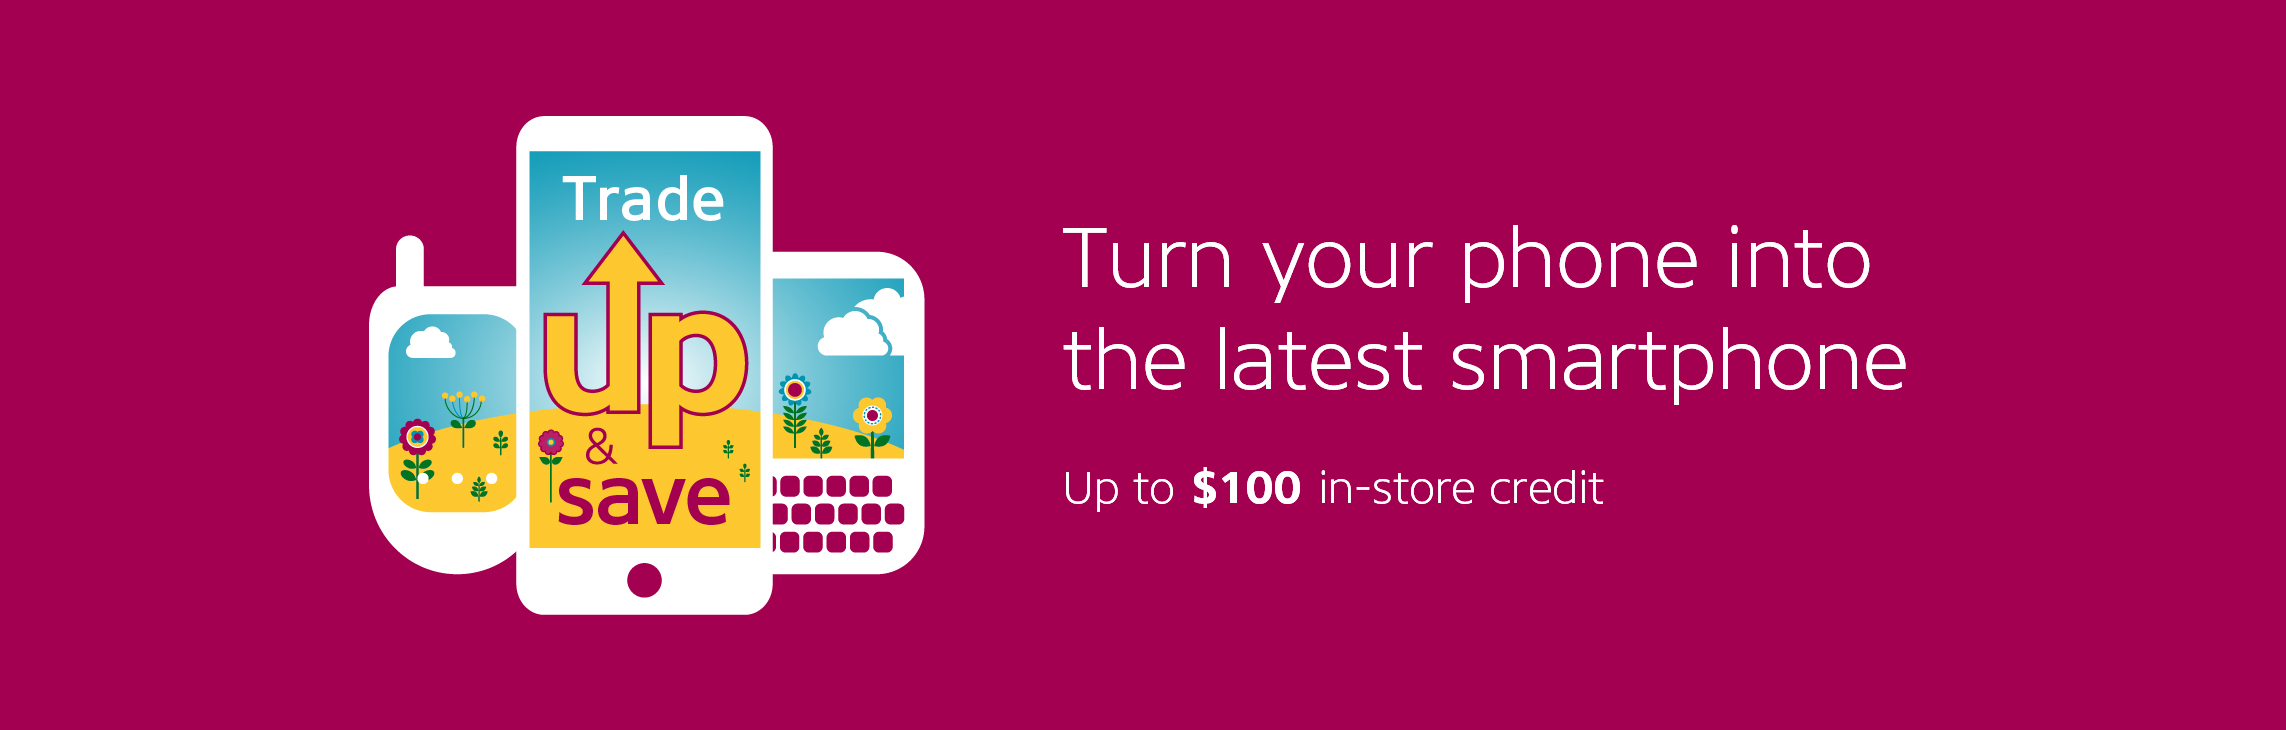 Turn your phone into the latest smartphone. Up to $100 in-store credit.